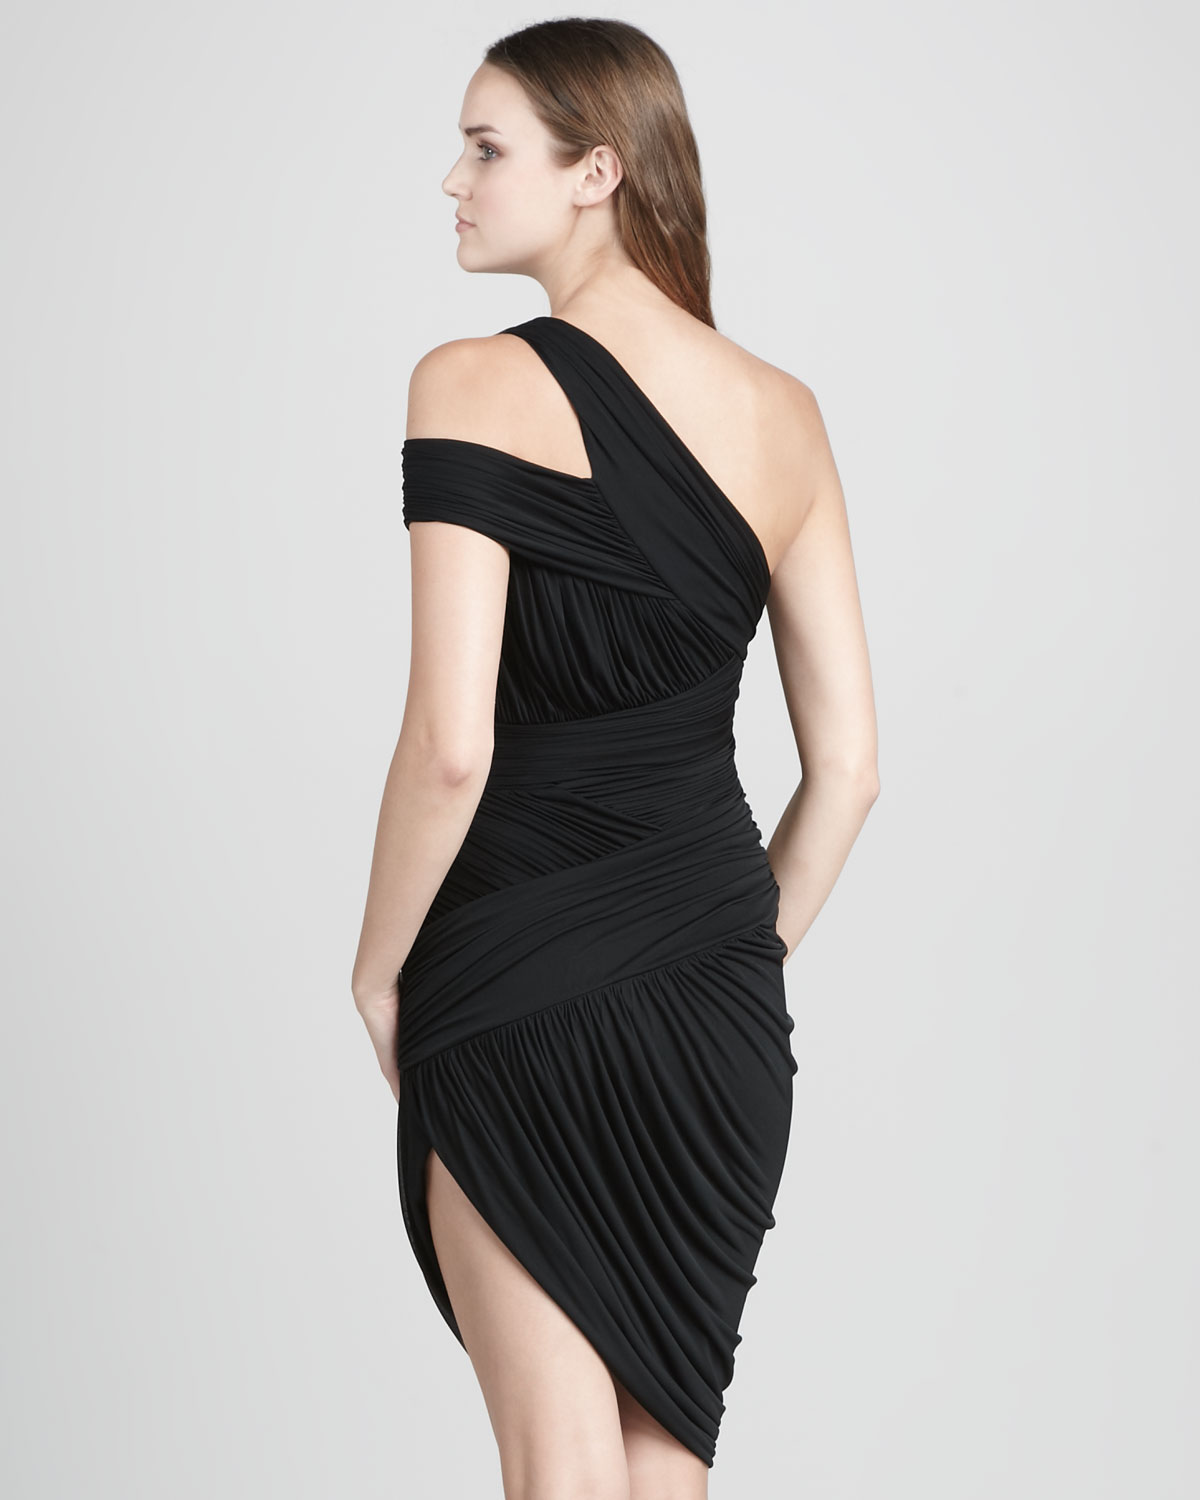 Snag This Hot Sale! 70% Off Halston Heritage Gown